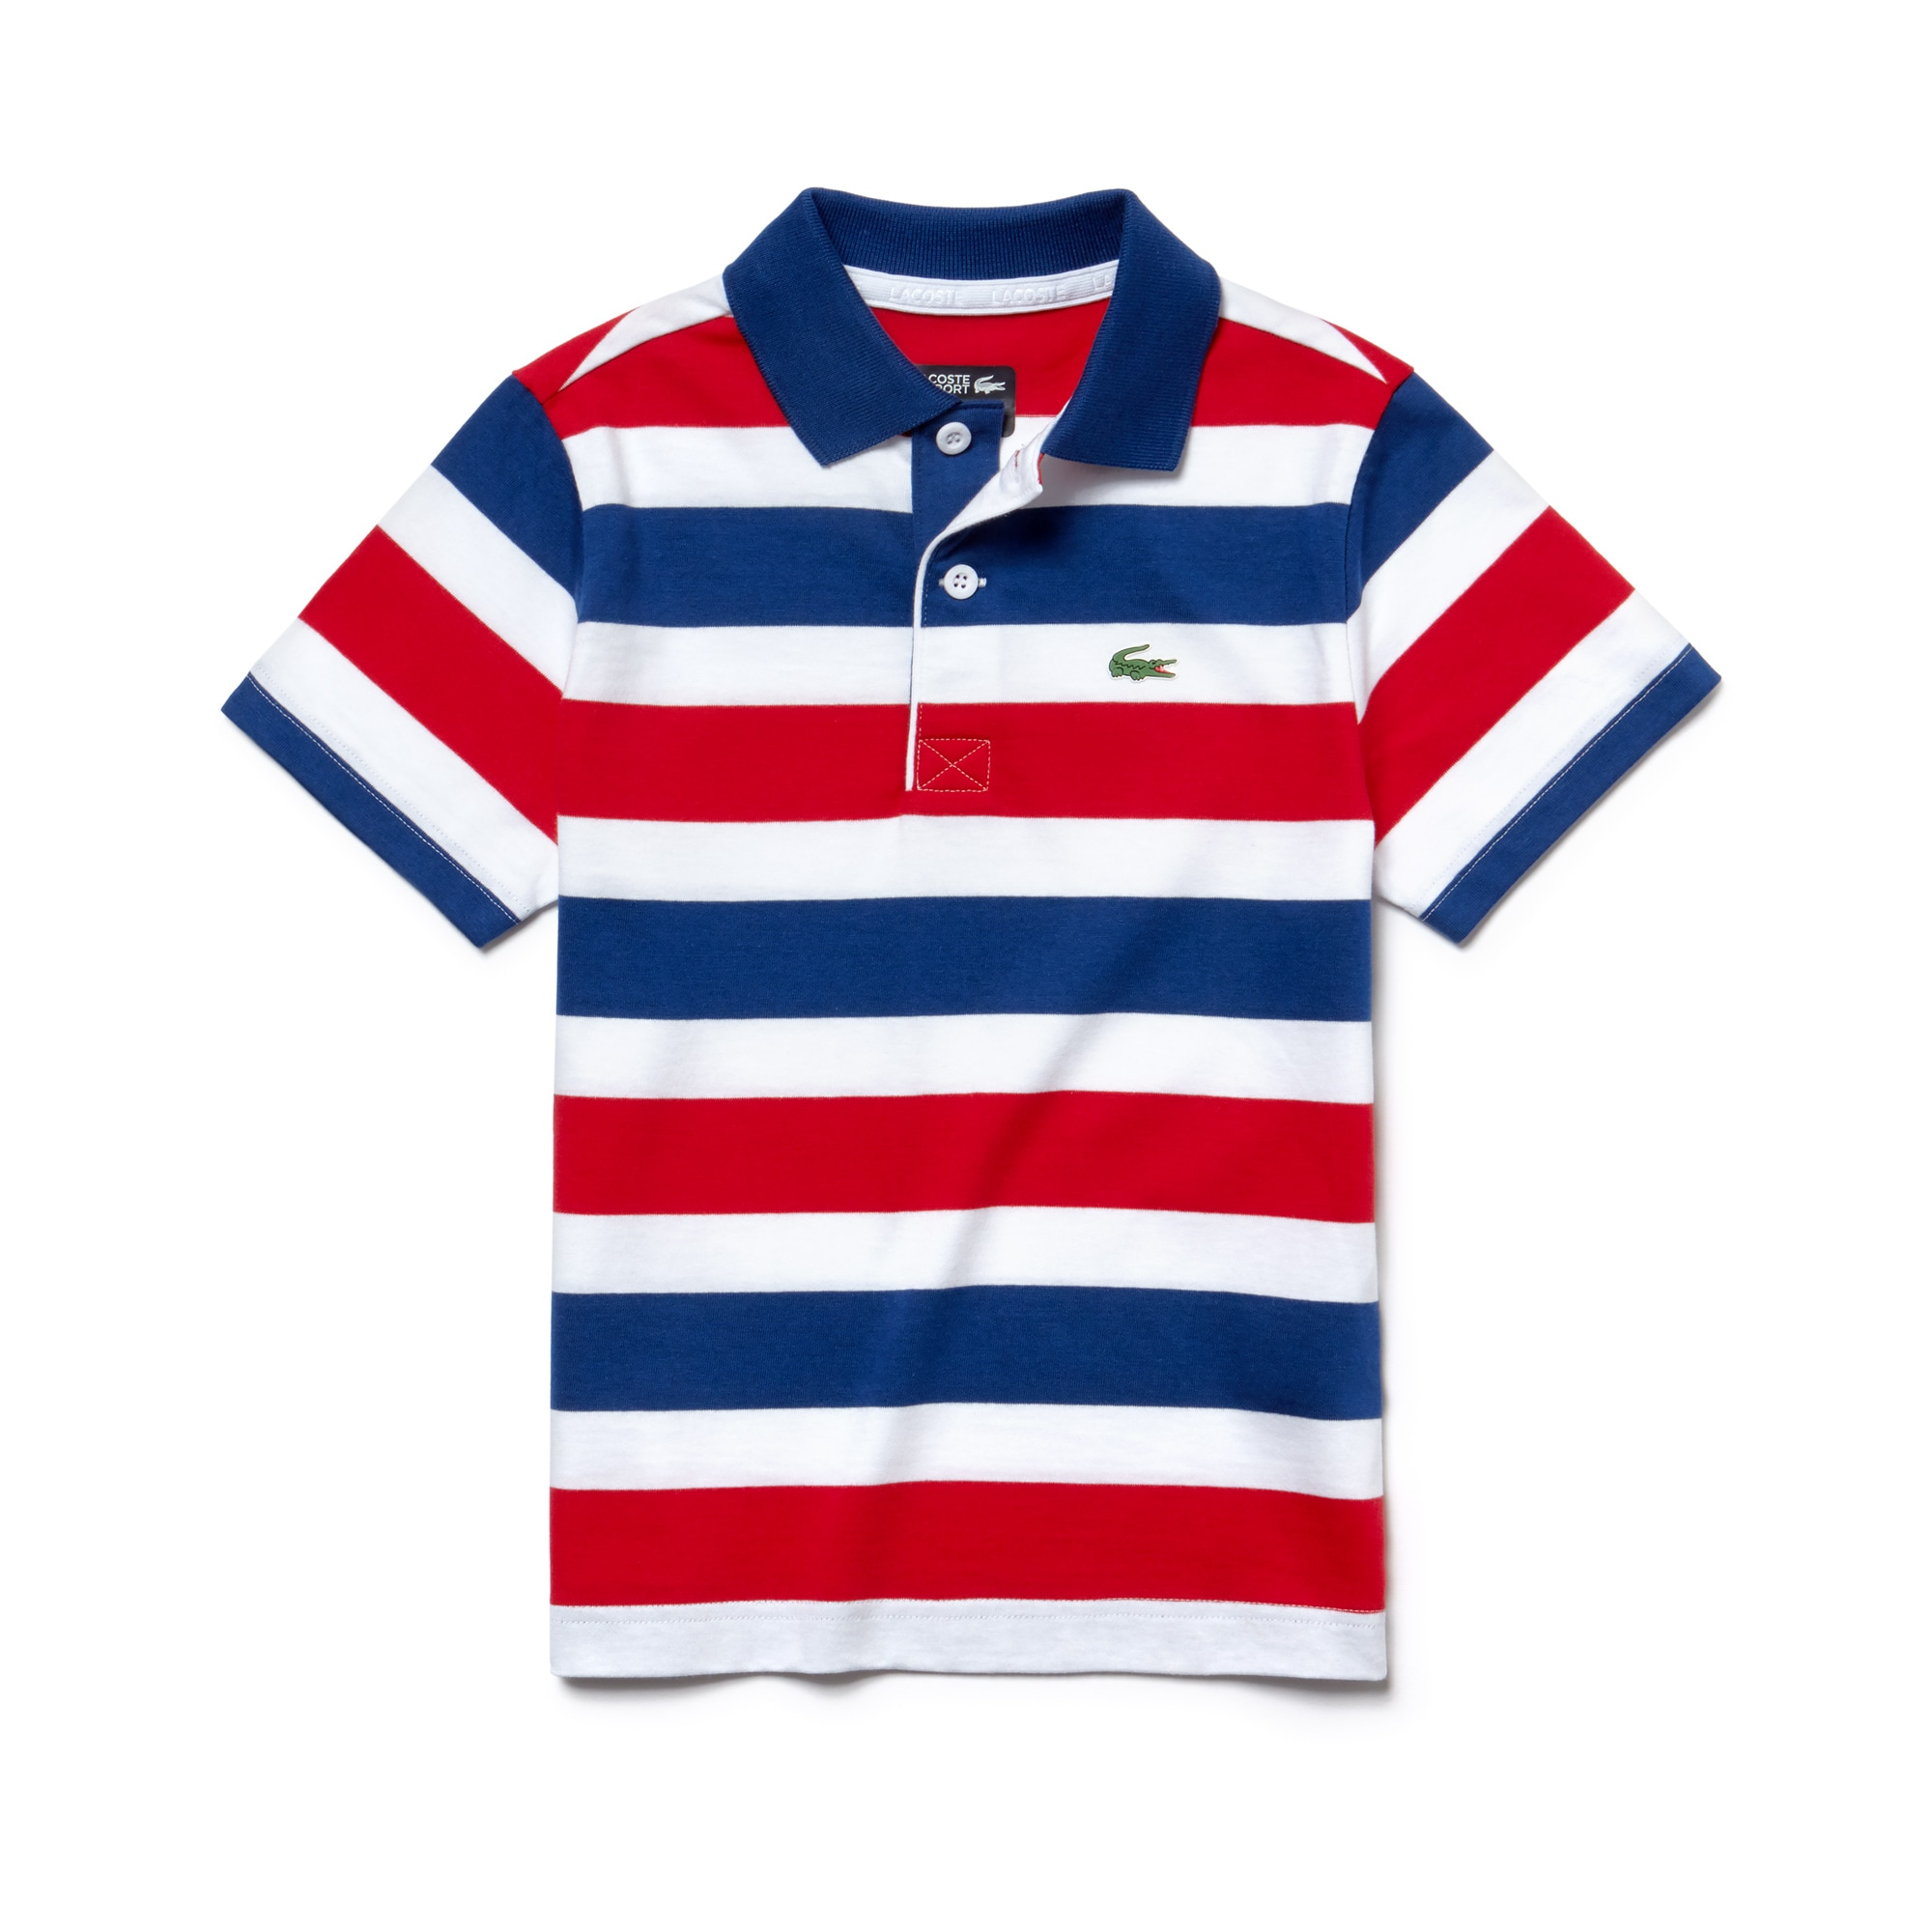 4a6692ddc Boys  Lacoste SPORT Striped Cotton Jersey Tennis Polo Shirt